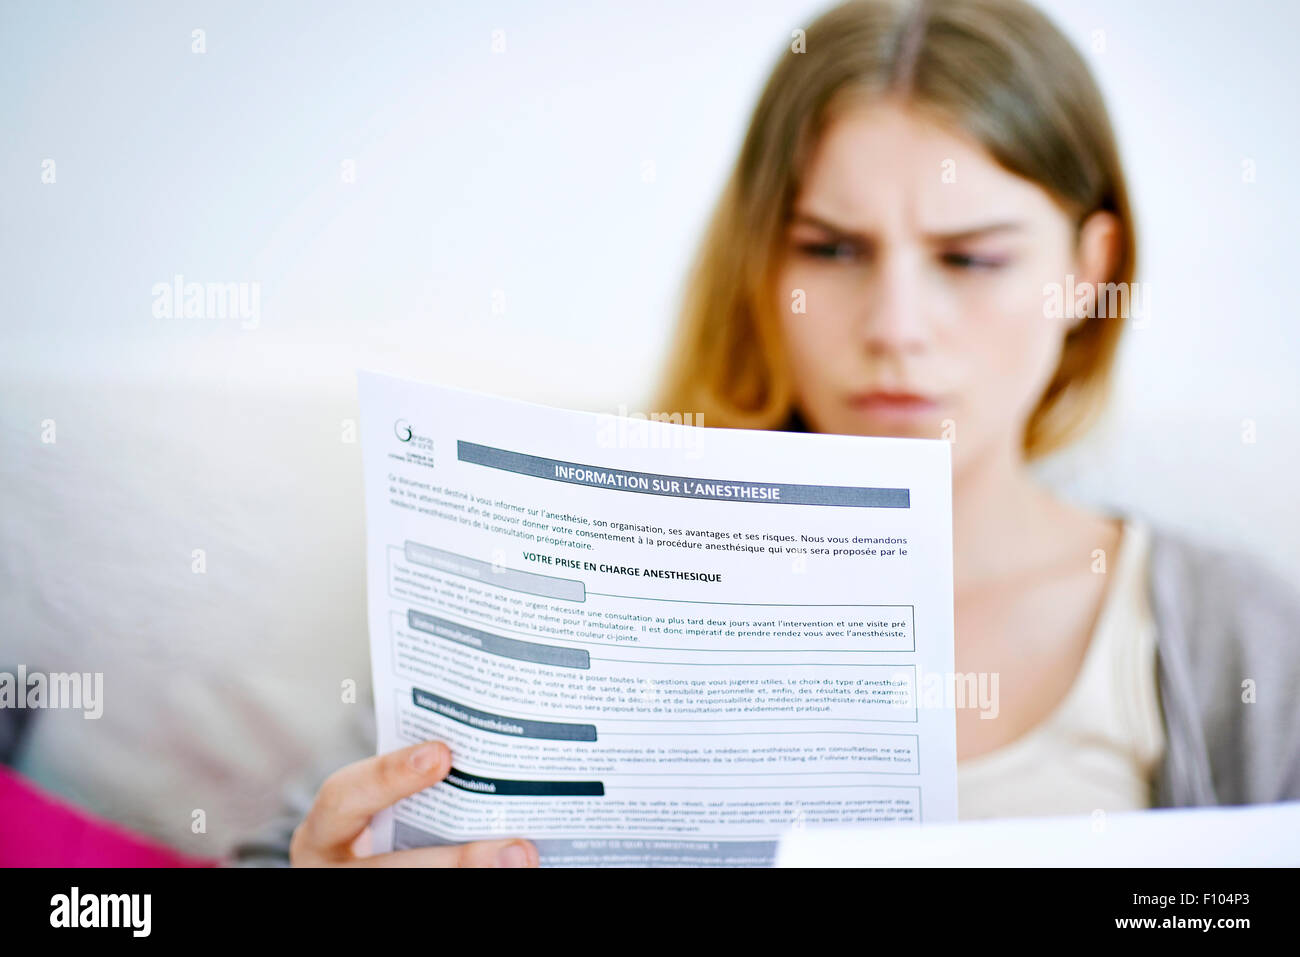 ANESTHESIA WOMAN - Stock Image